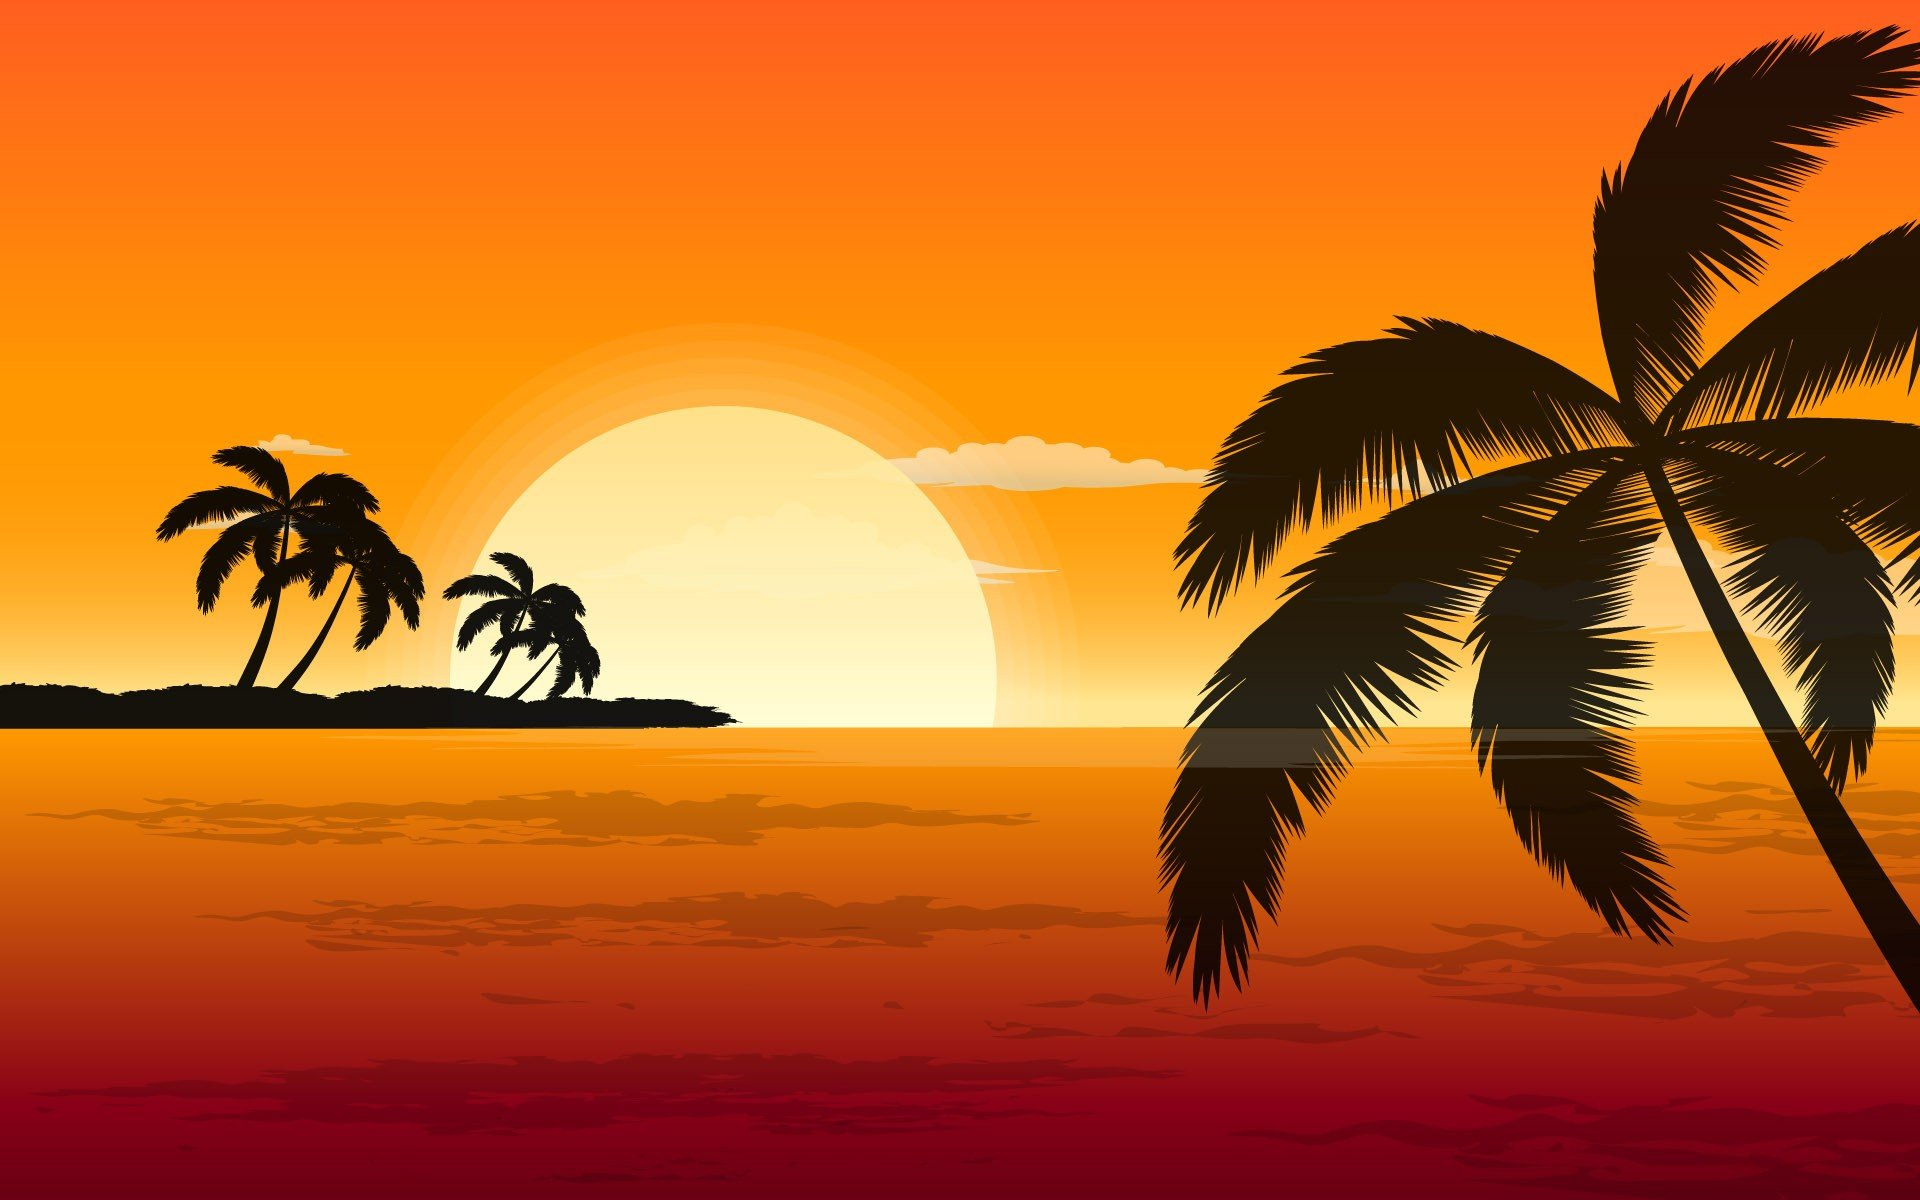 palm trees sunset wallpapers palm trees sunset wallpapers palm trees 1920x1200